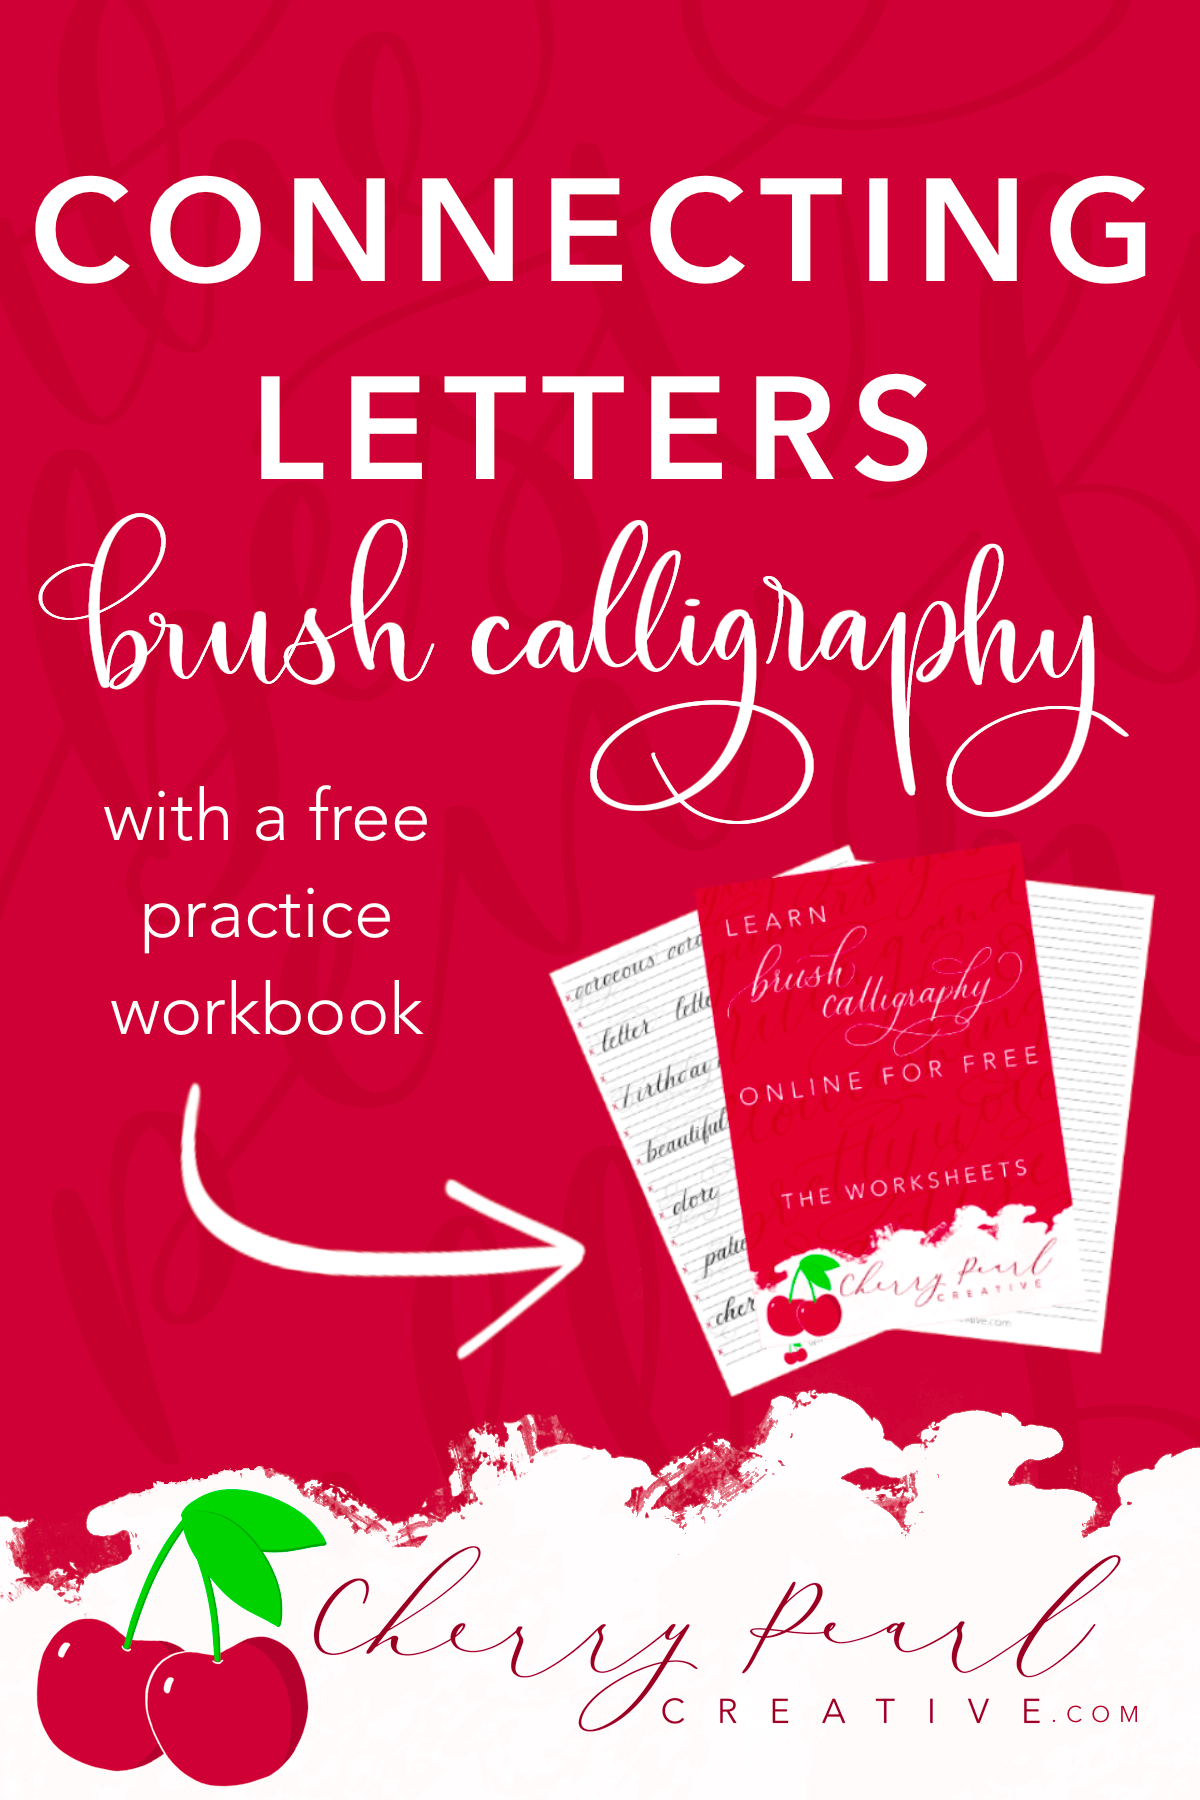 Learn To Connect Letters In Brush Calligraphy In